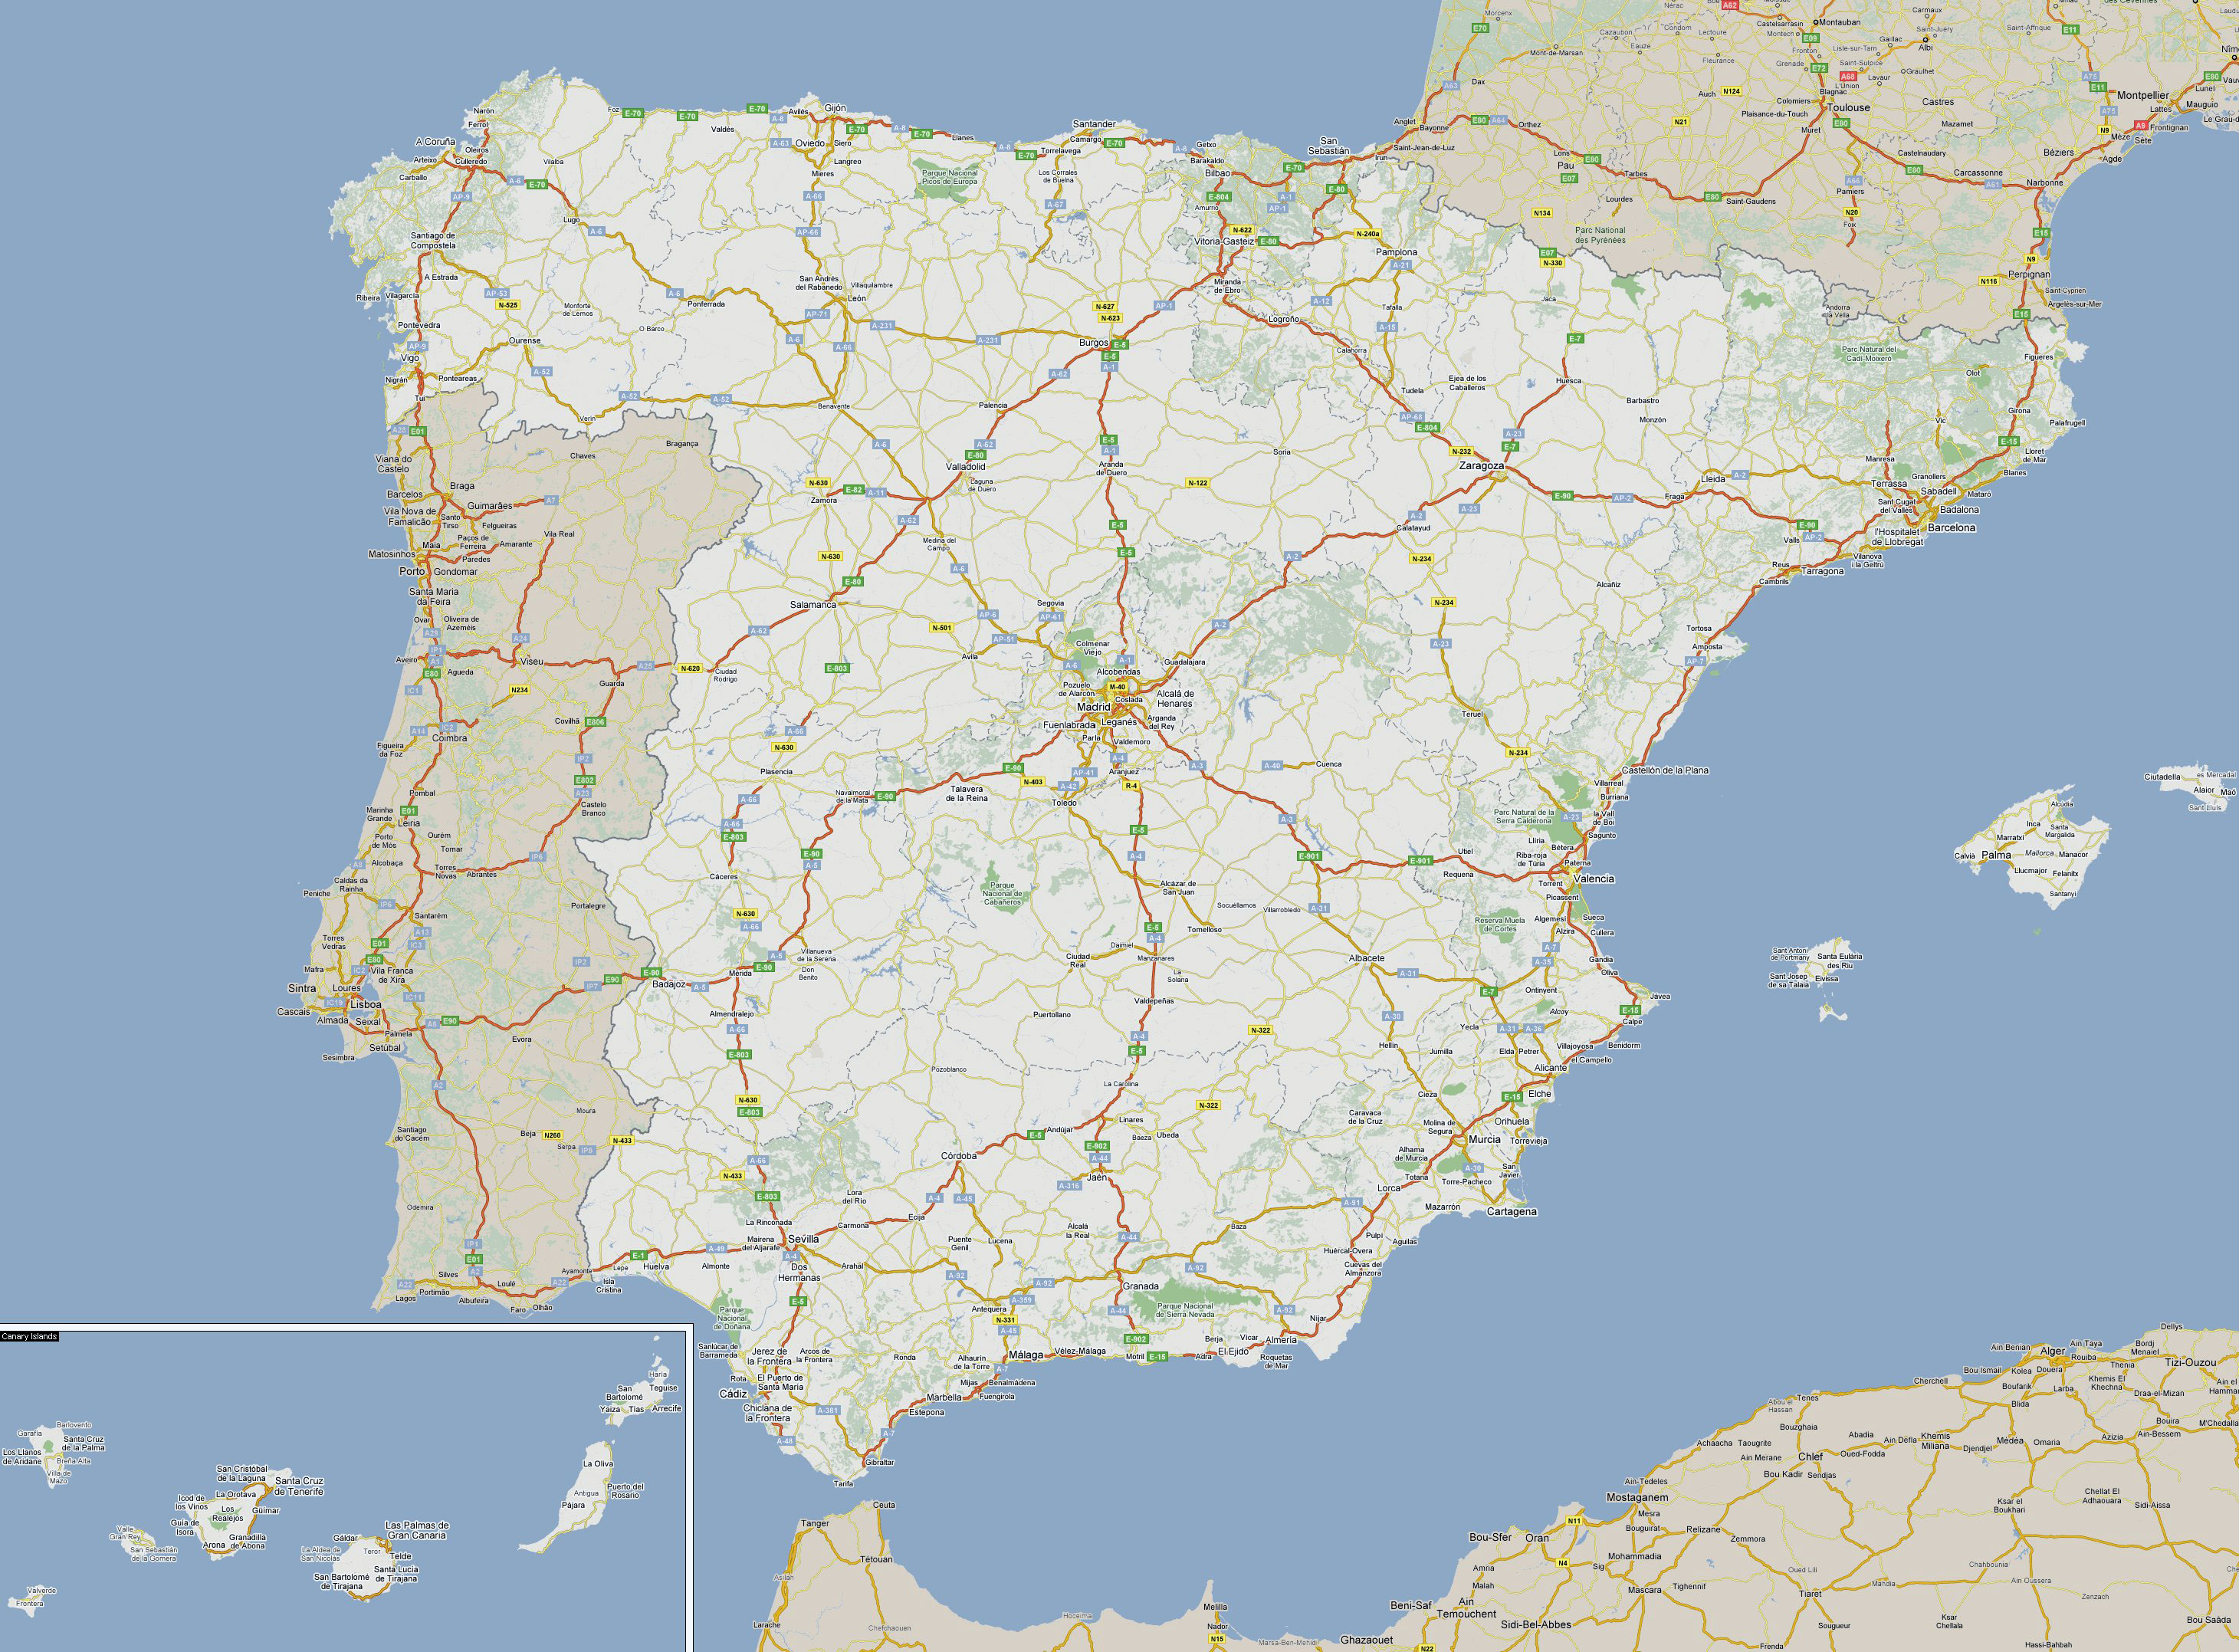 Map Of Portugal And Spain Detailed.Large Detailed Roads Map Of Spain And Portugal Vidiani Com Maps